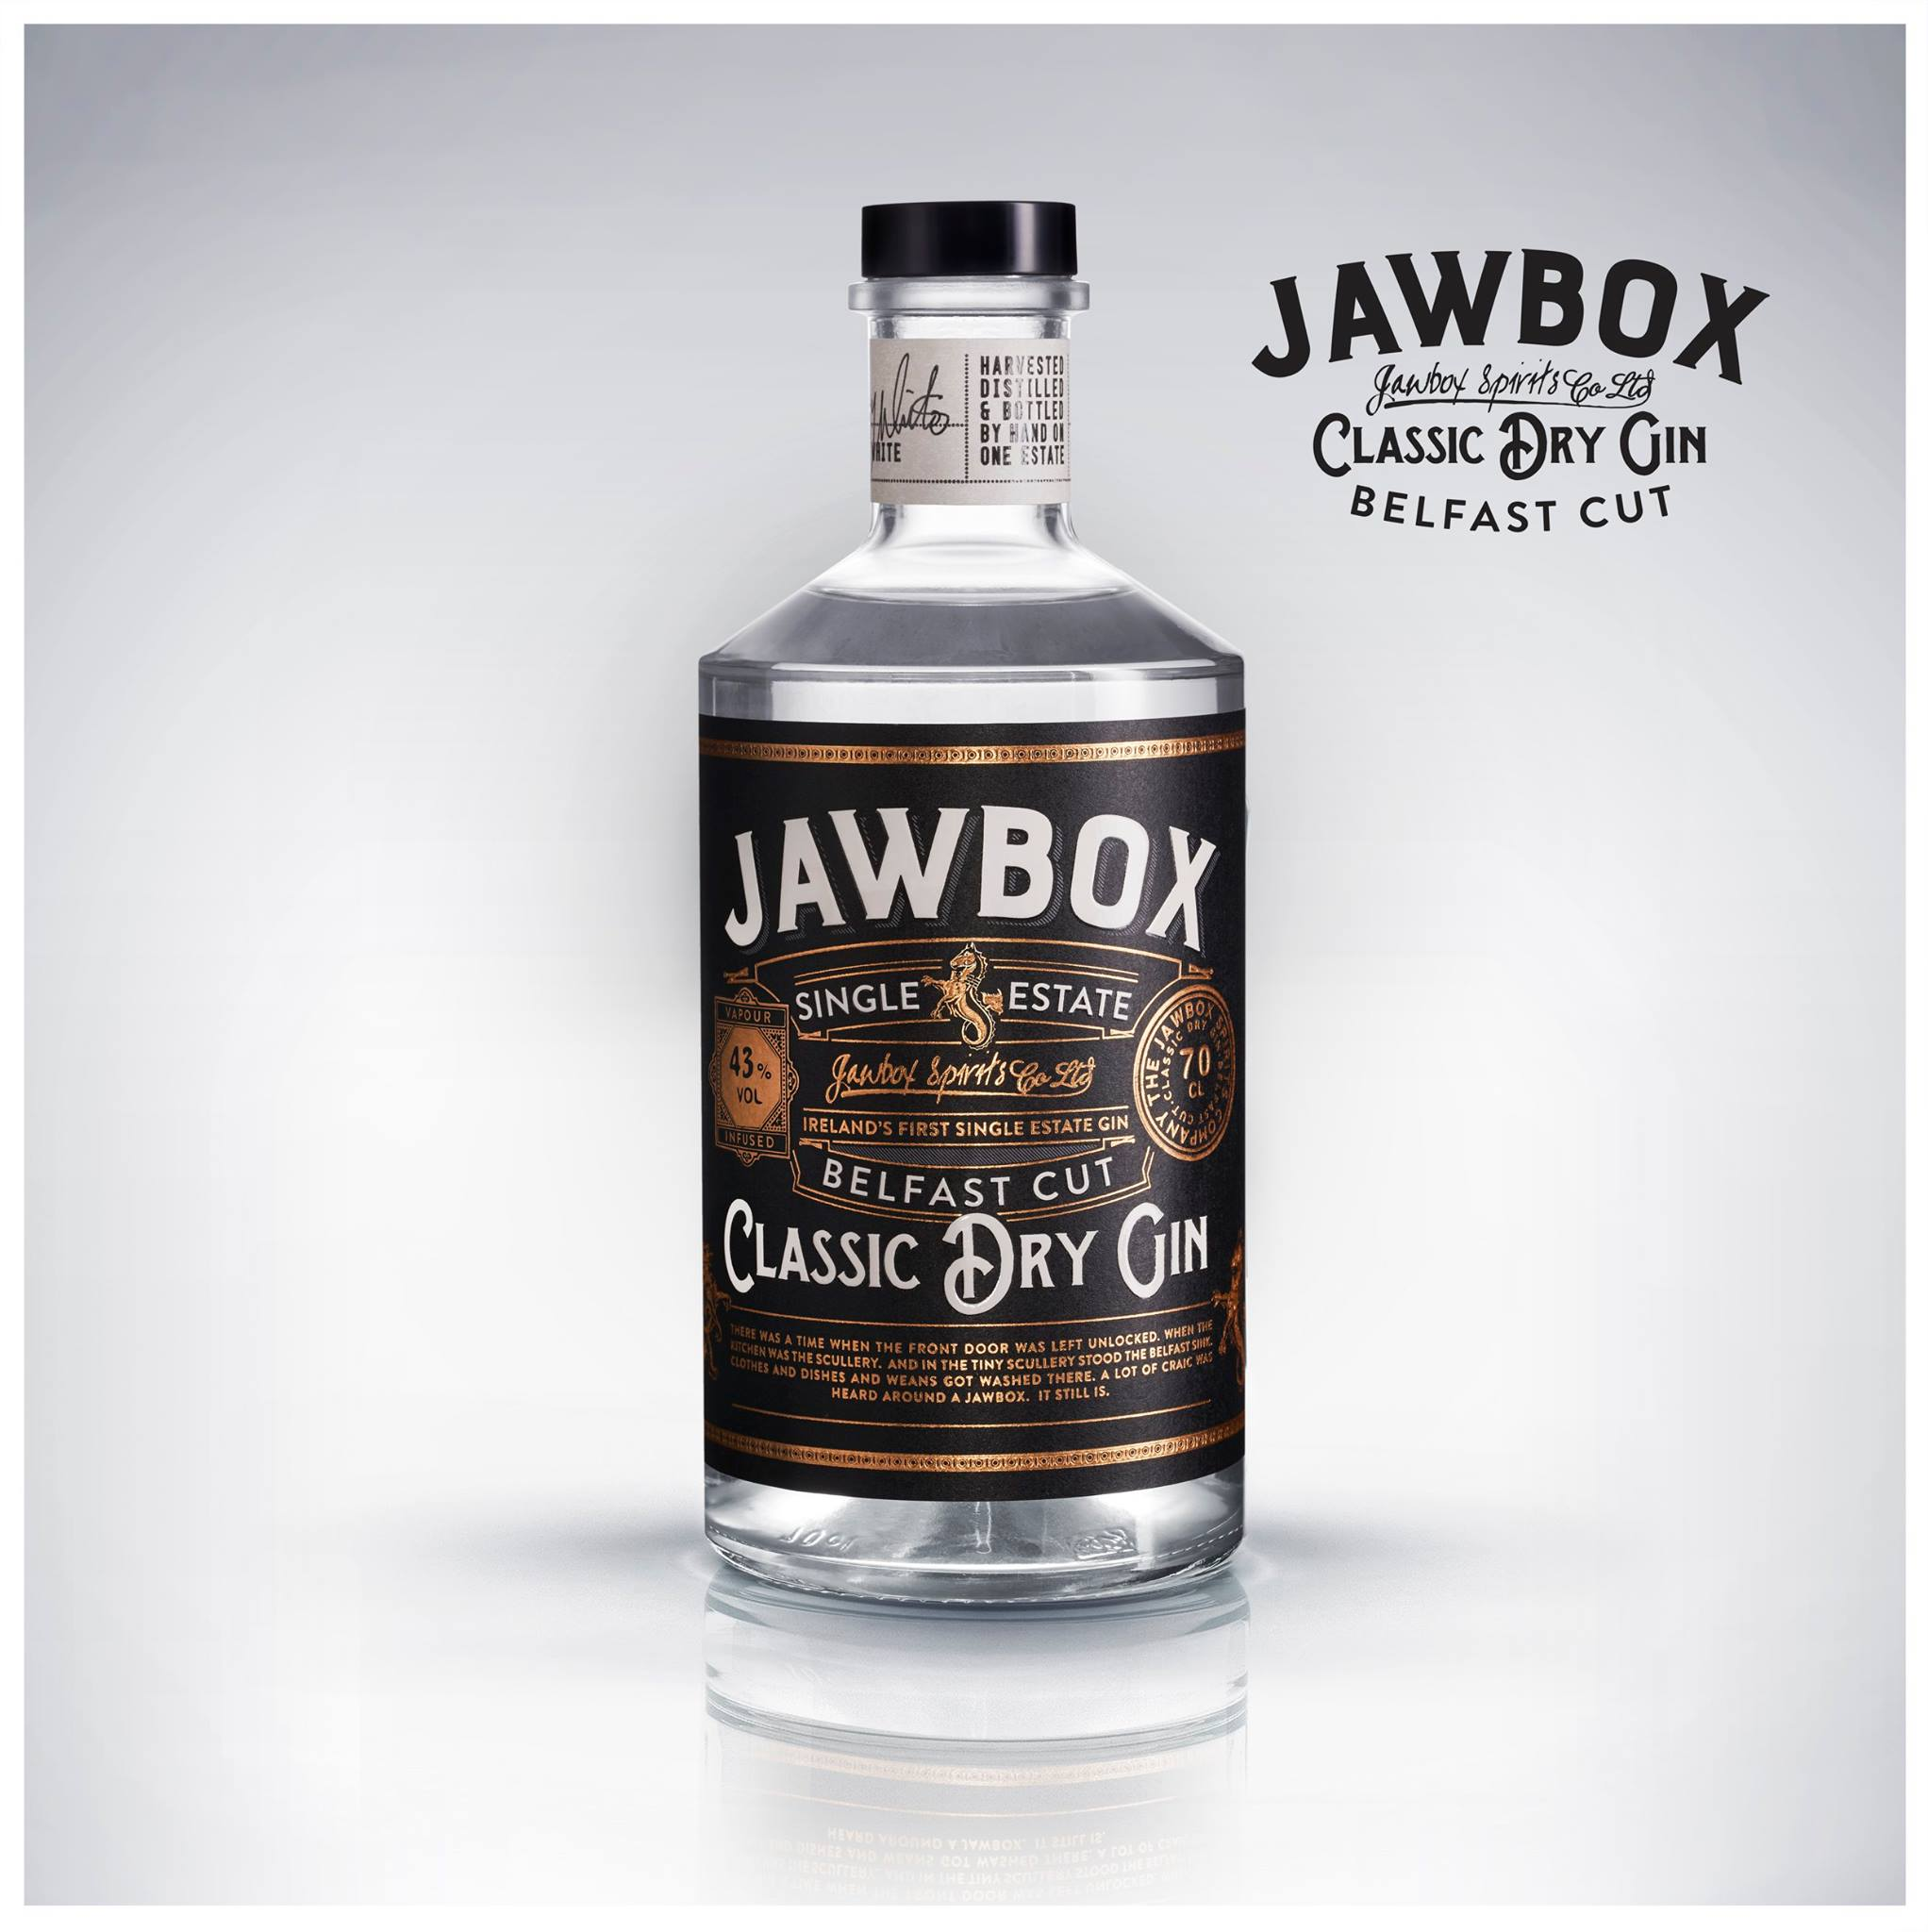 Jawbox Gin: Client Drinksology / Jawbox Gin more bottle imagery in drinks gallery.